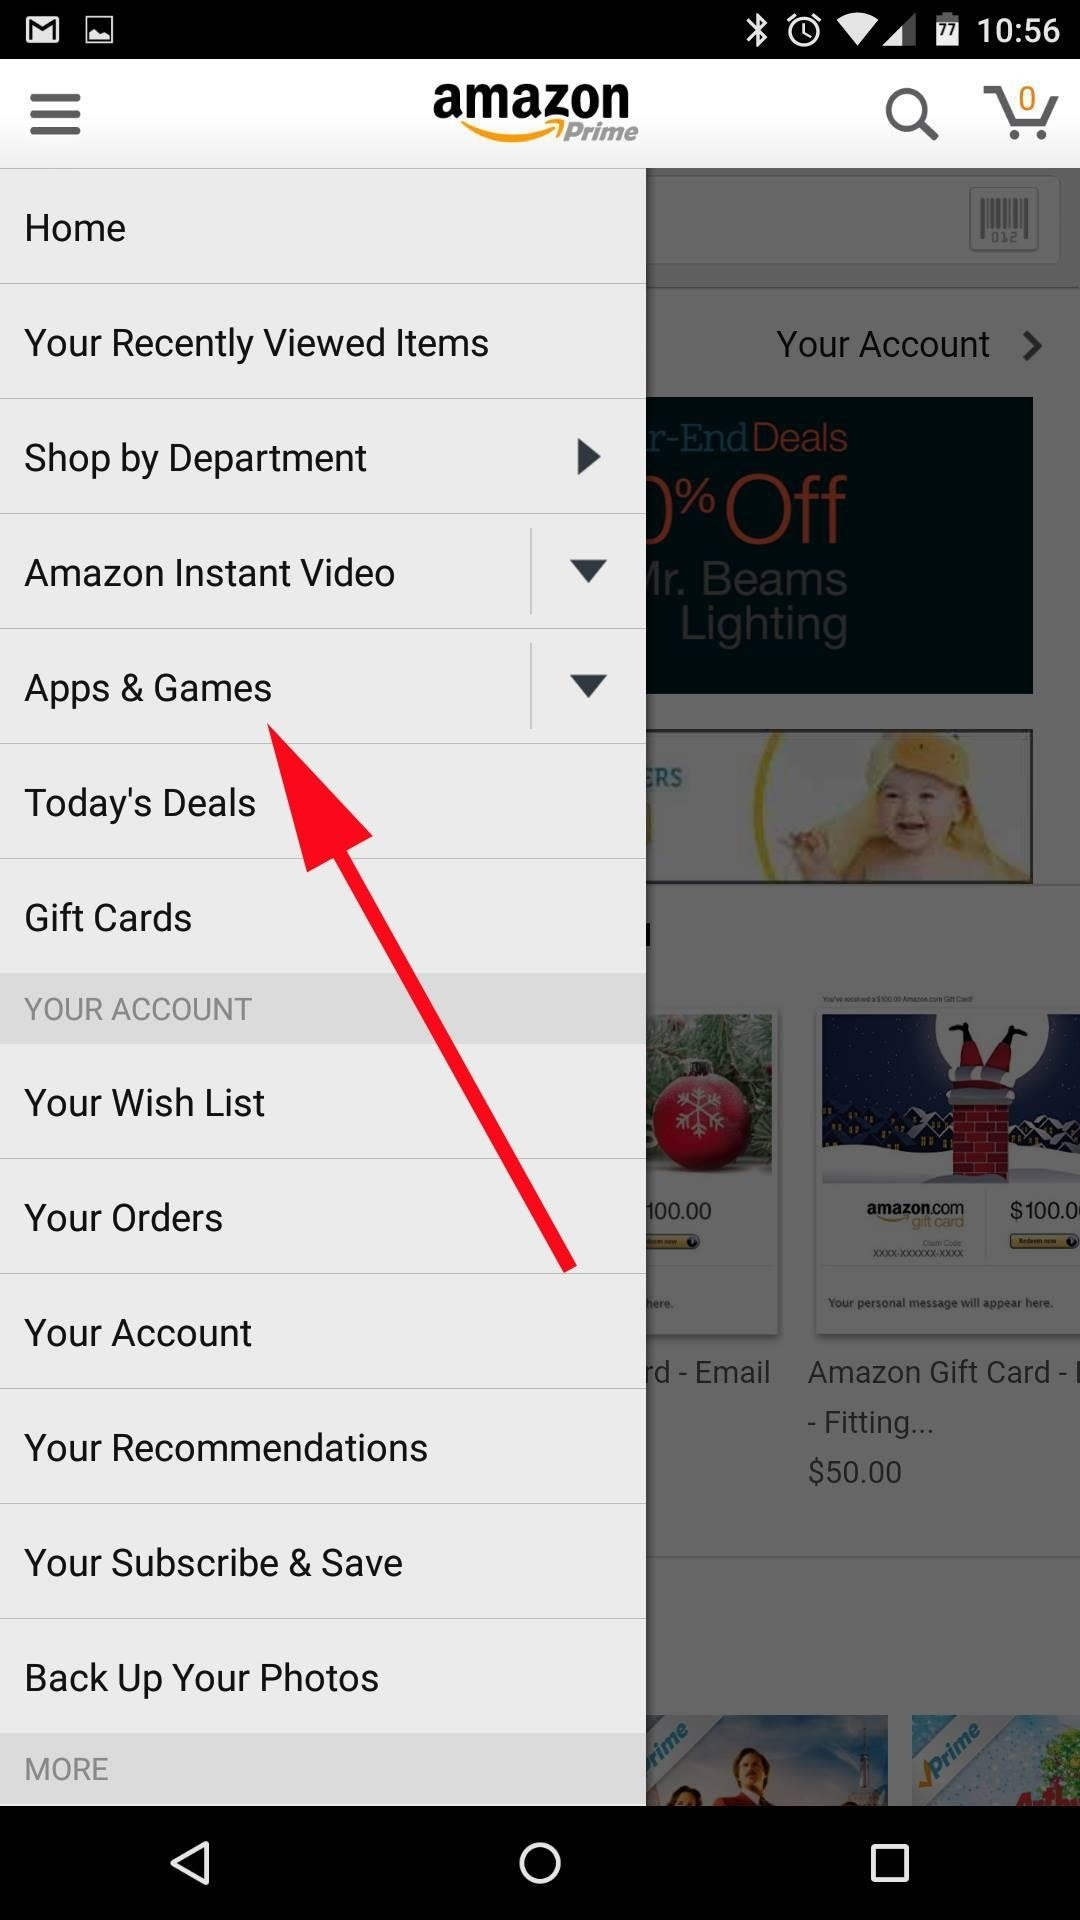 How to Get 40 Paid Android Apps for Free in the Amazon Appstore